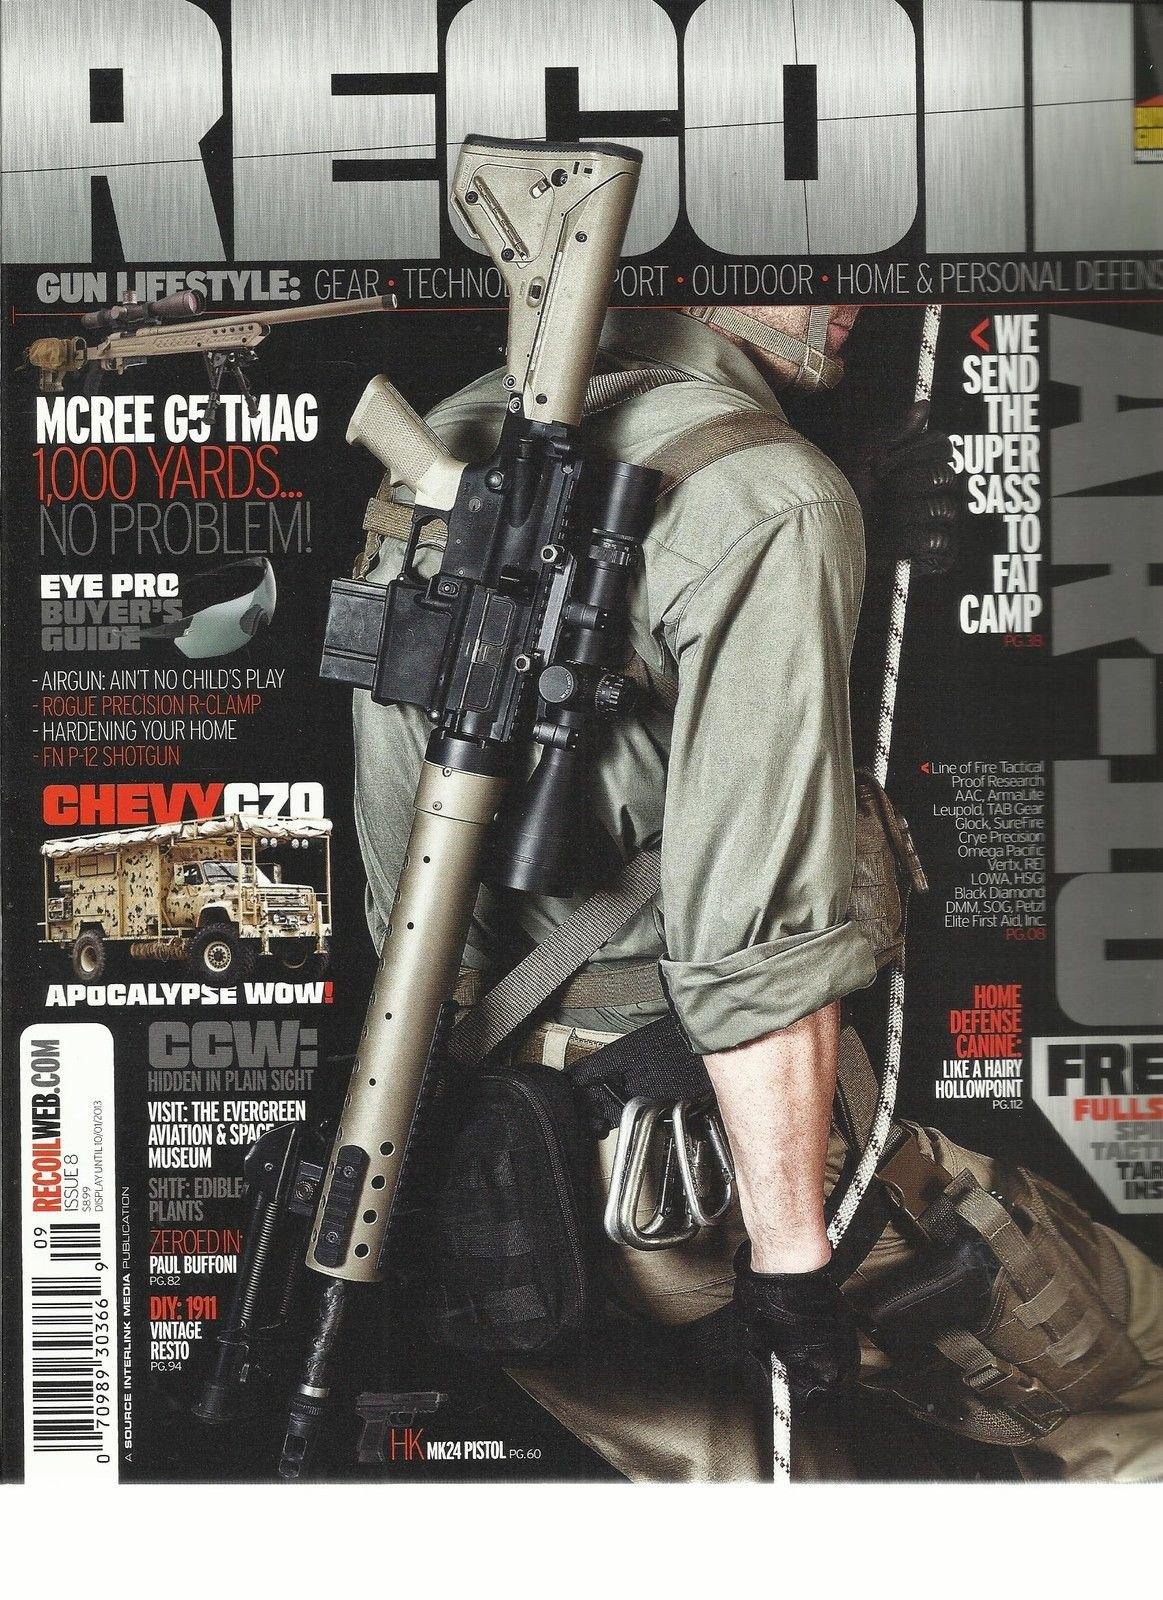 RECOIL, HOME & PERSONAL DEFENSE, ISSUE, 8 (WE SEND THE SUPER SASS TO FAT CAMP